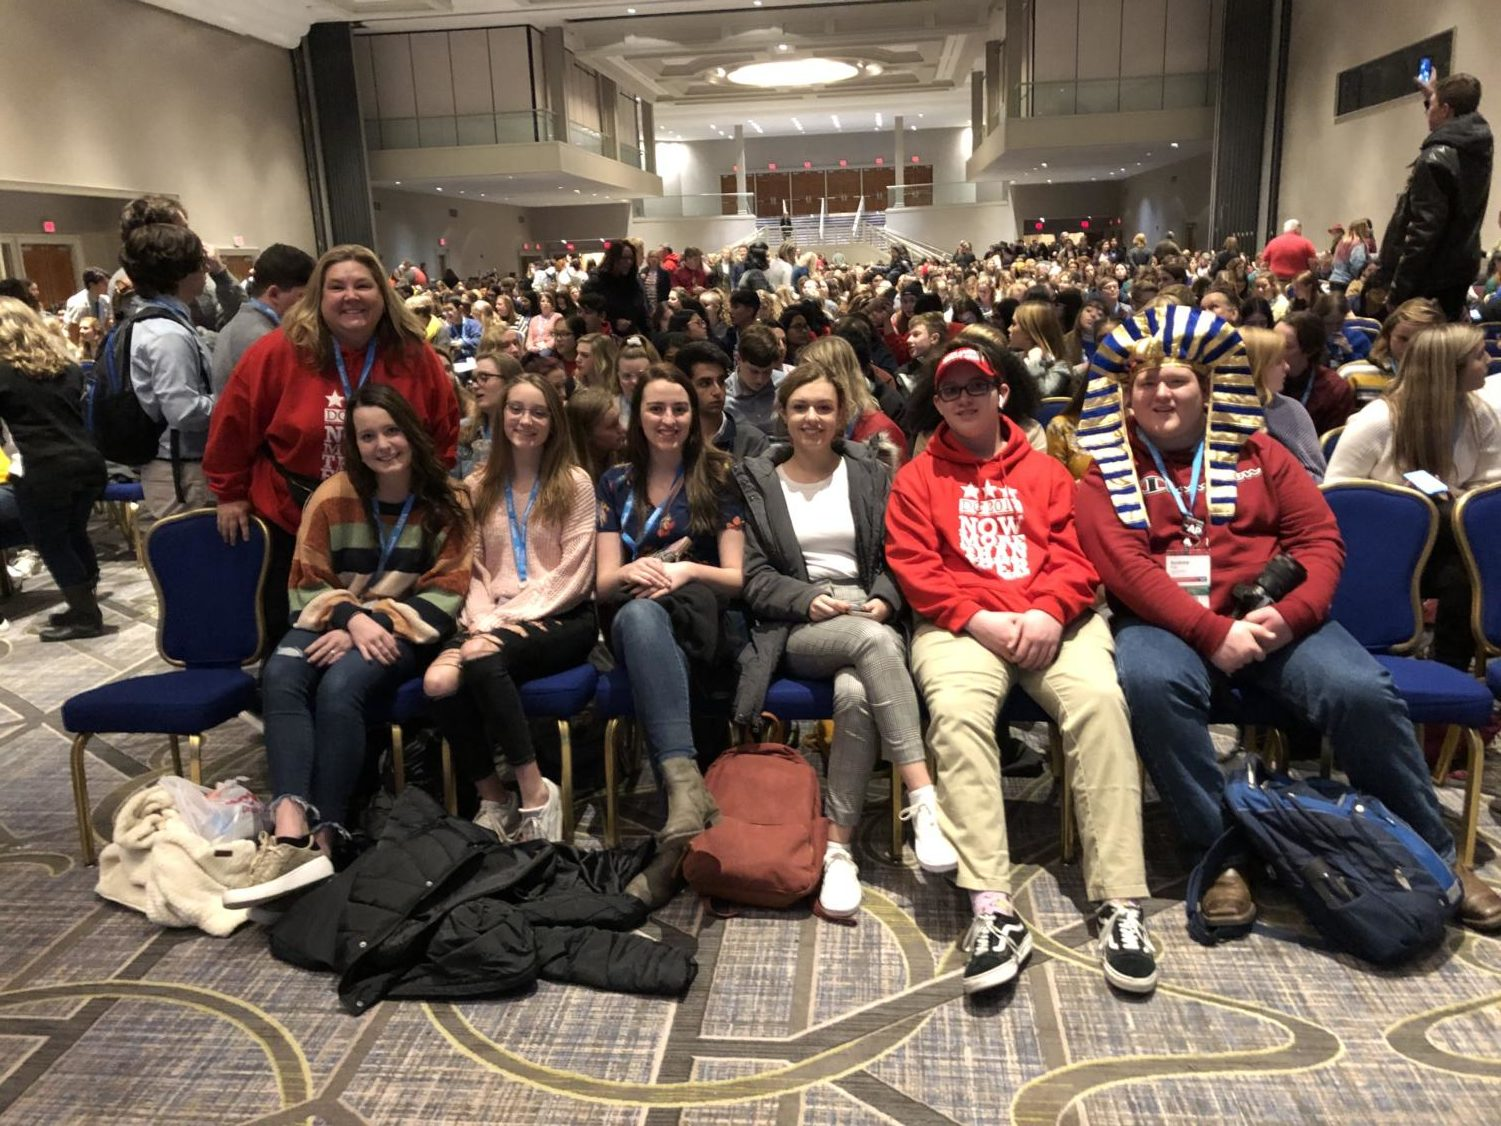 Staff Members attend the annual Journalism Educators Association (JEA) convention on November 23, 2019 in Washington D.C. (Photo Courtesy Jeanne Acton)